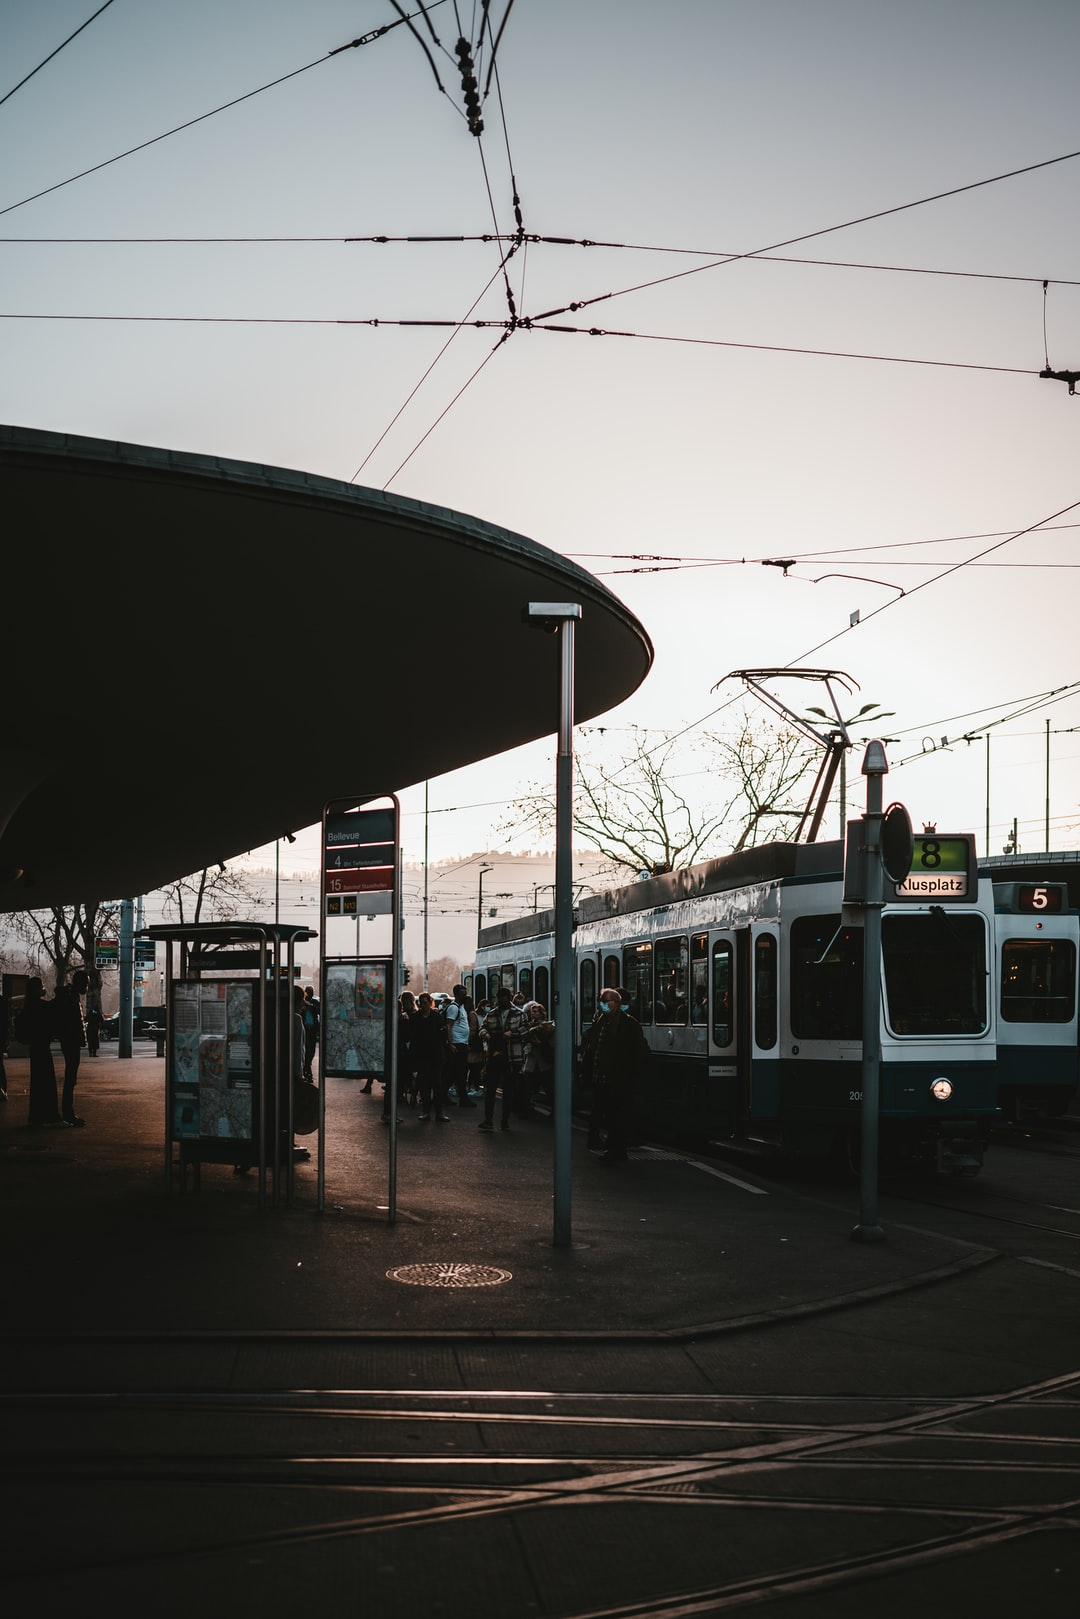 white and black train on train station during daytime